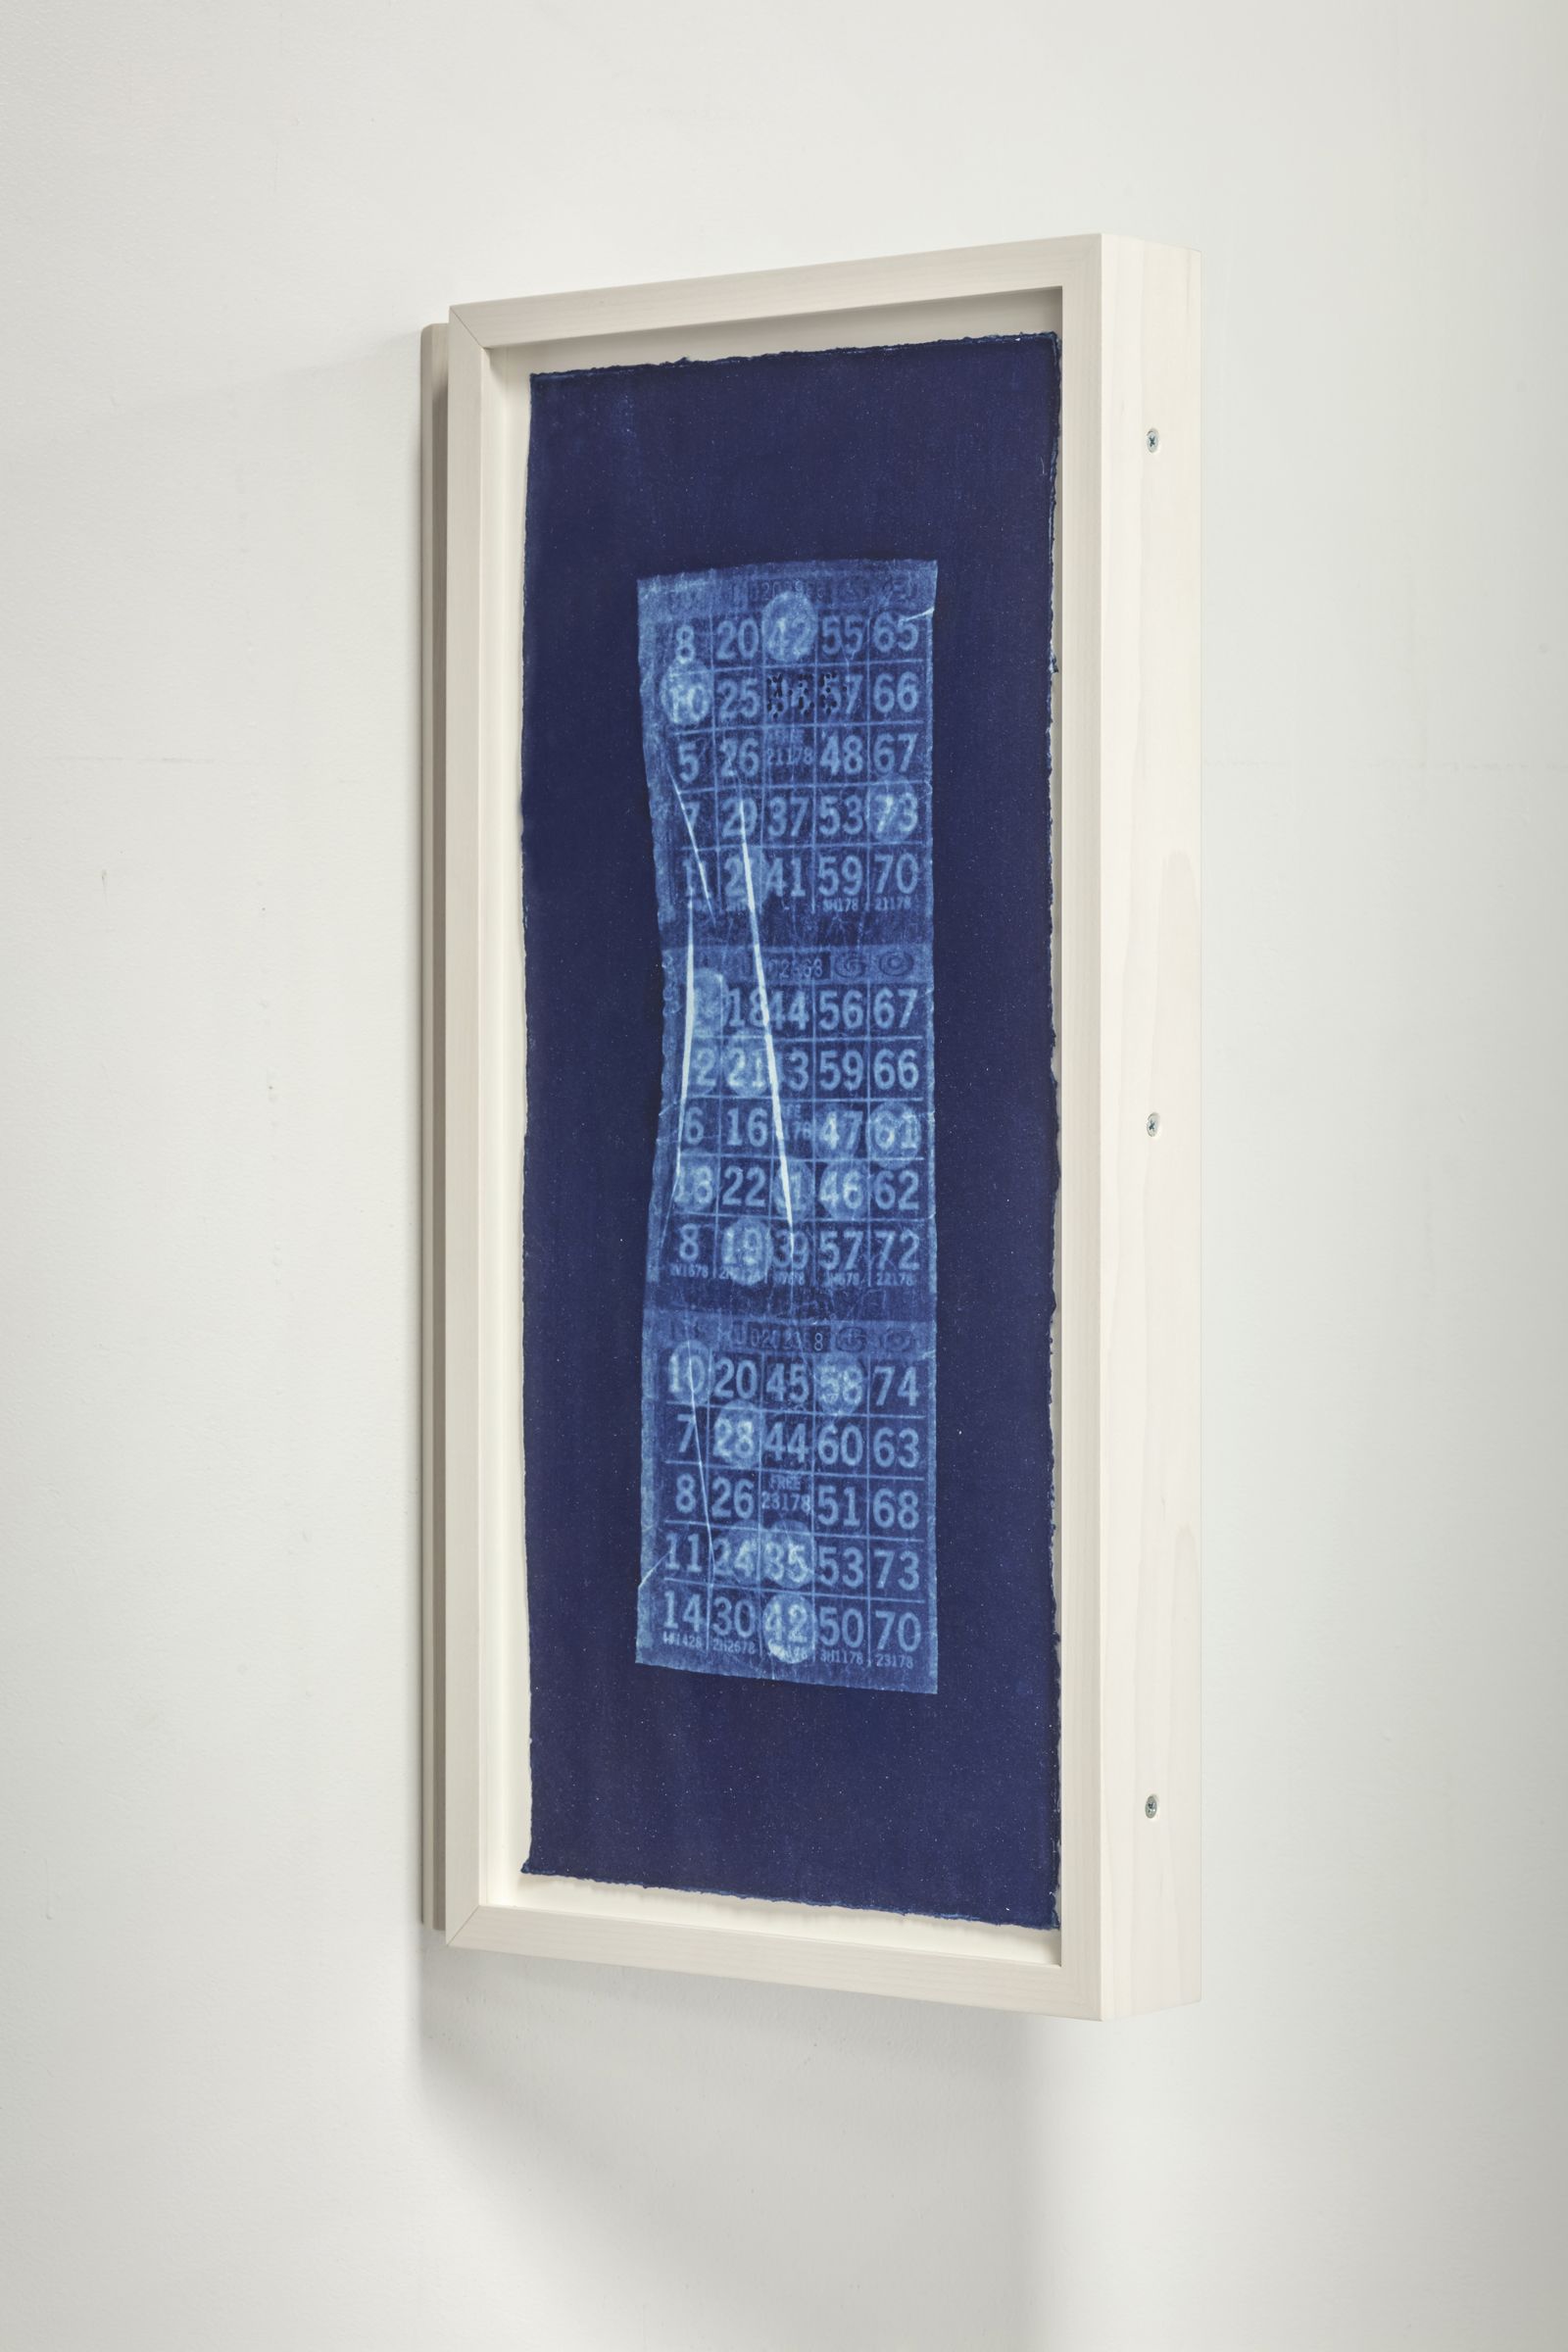 "Lili Huston-Herterich  At Dusk Wet Ink Follows The Man / At Dusk Dry Men Follow The Moons , 2015 Cyanotype diptych, 7.25"" x 16"" (print size) Signed edition of 10 diptych"